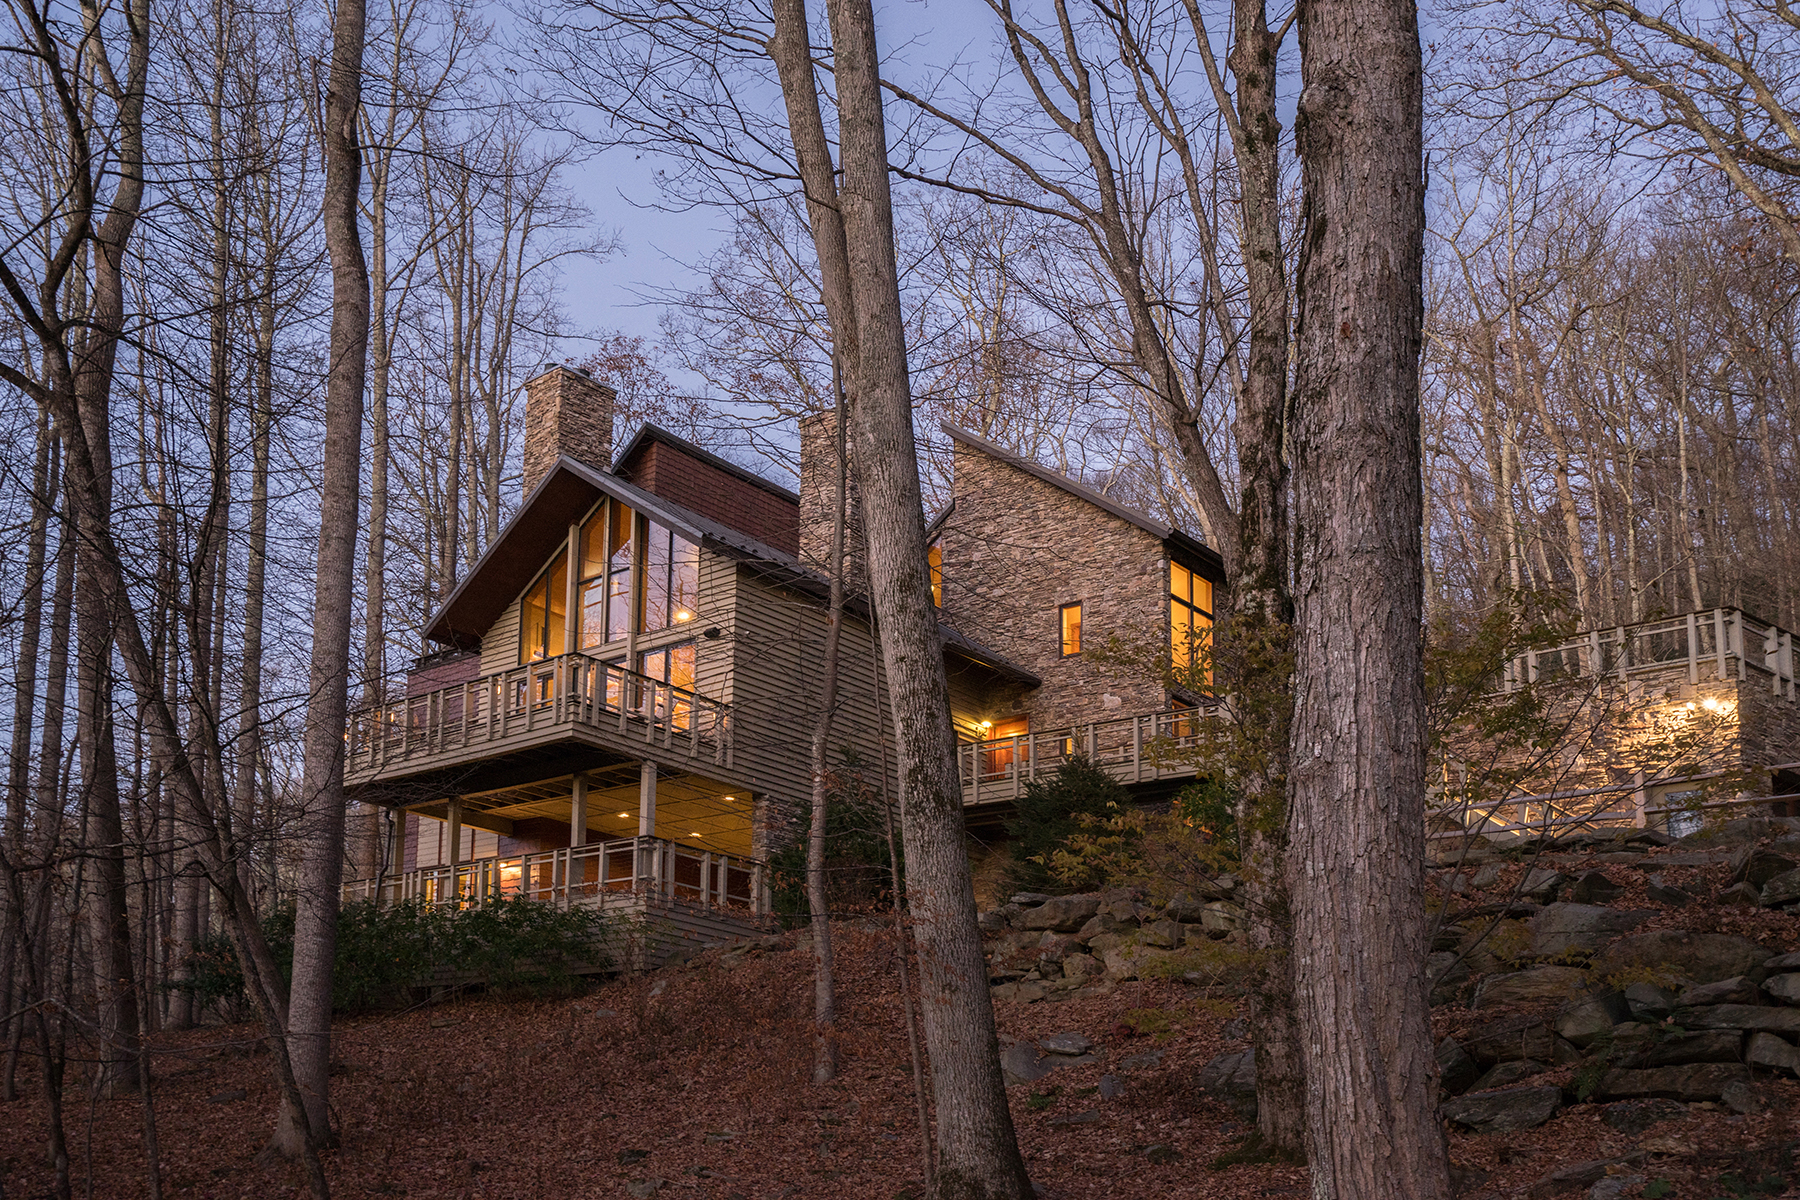 Single Family Home for Sale at BLOWING ROCK - Yonahlossee 167 Glenridding Rd, Boone, North Carolina 28607 United States